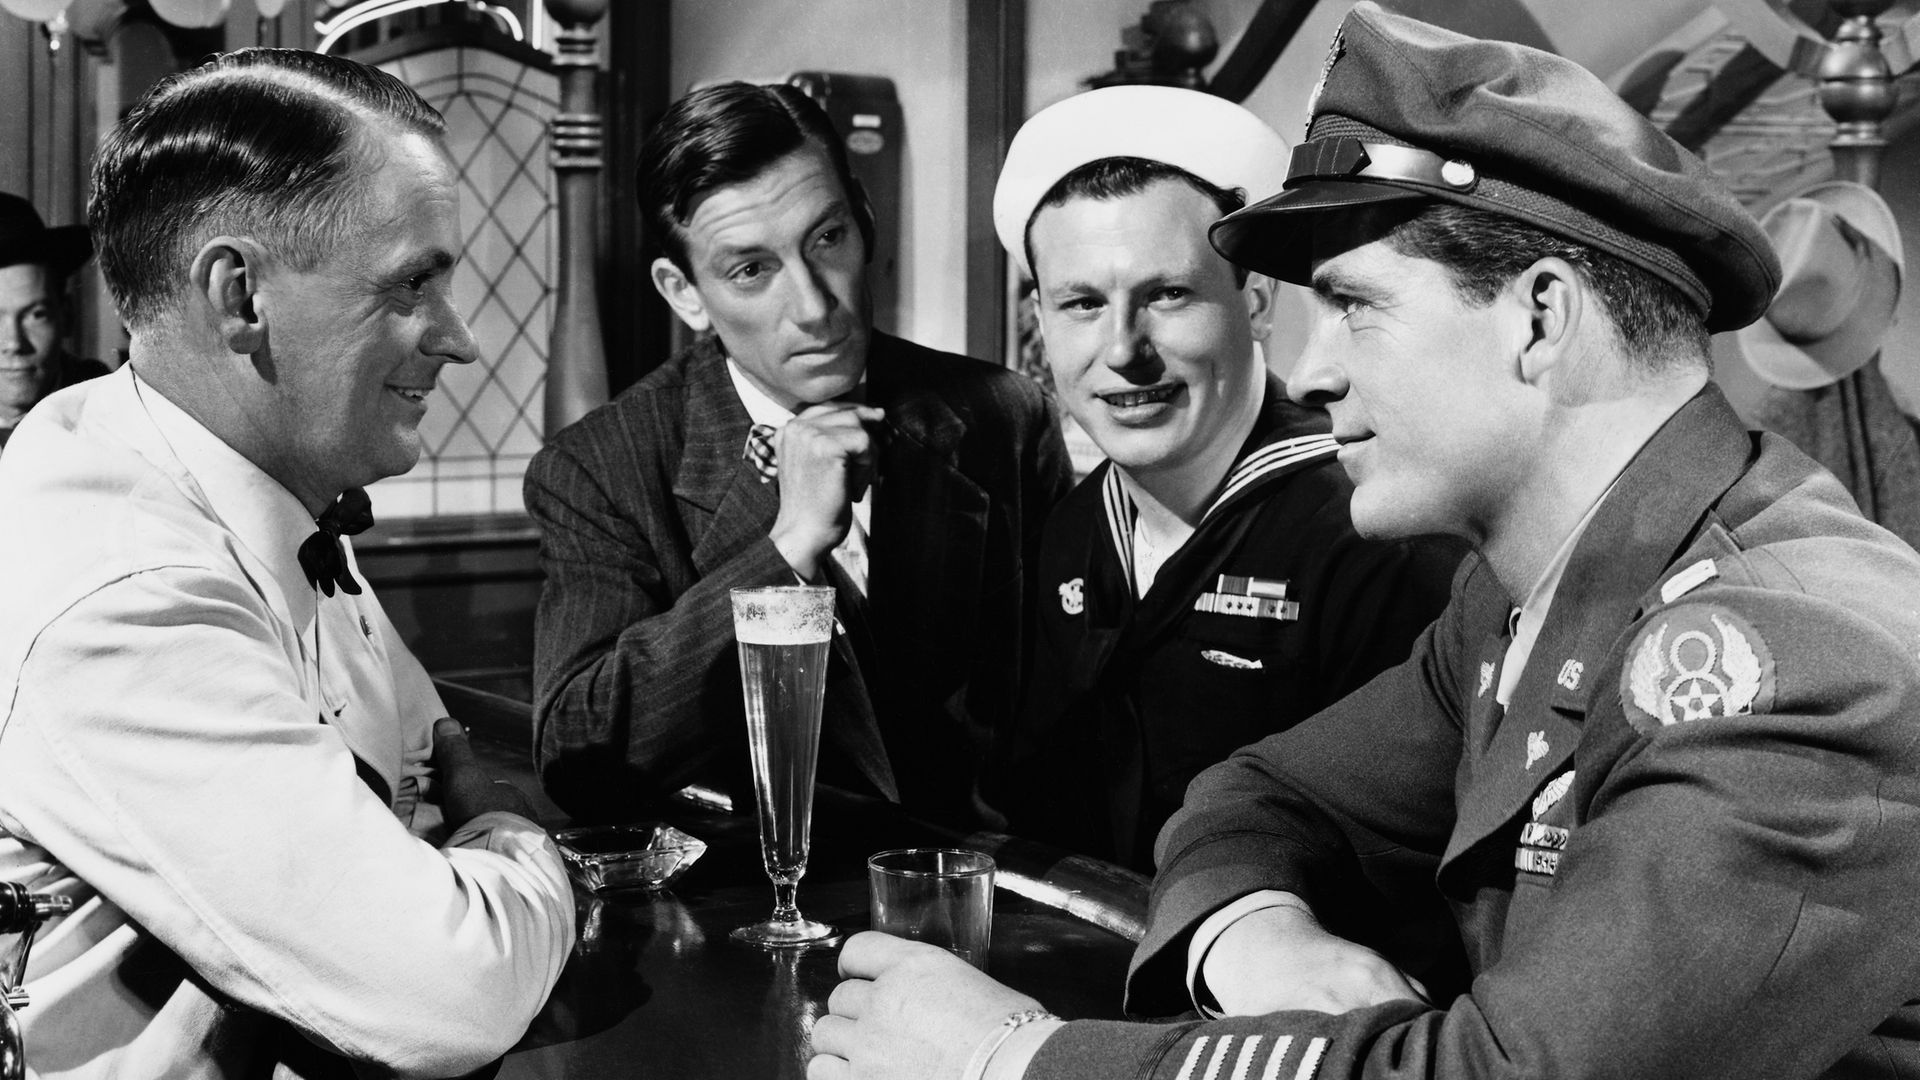 Hoagy Carmichael as Uncle Butch, Harold Russell as Homer Parrish, and Dana Andrews as Fred Derry in the 1946 film The Best Years of Our Lives - Credit: Corbis via Getty Images